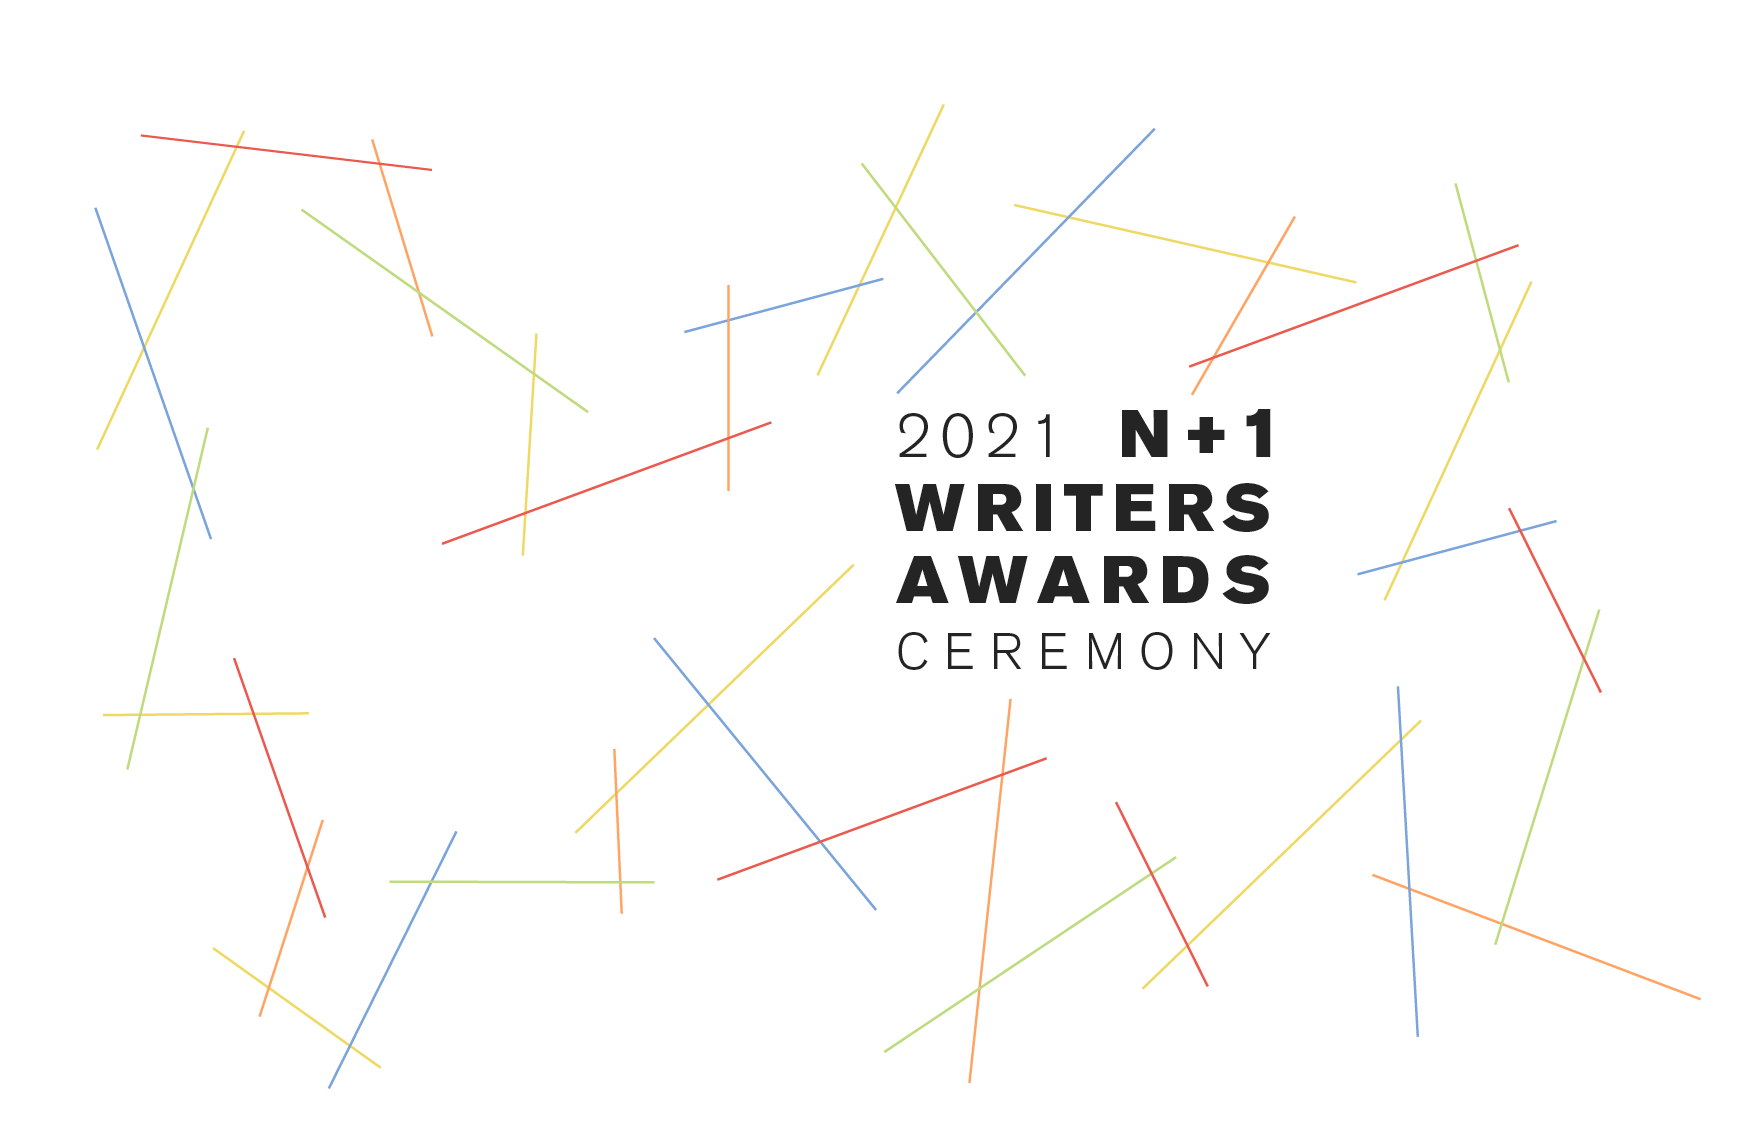 The 2021 Writers Awards Ceremony by n+1 Foundation